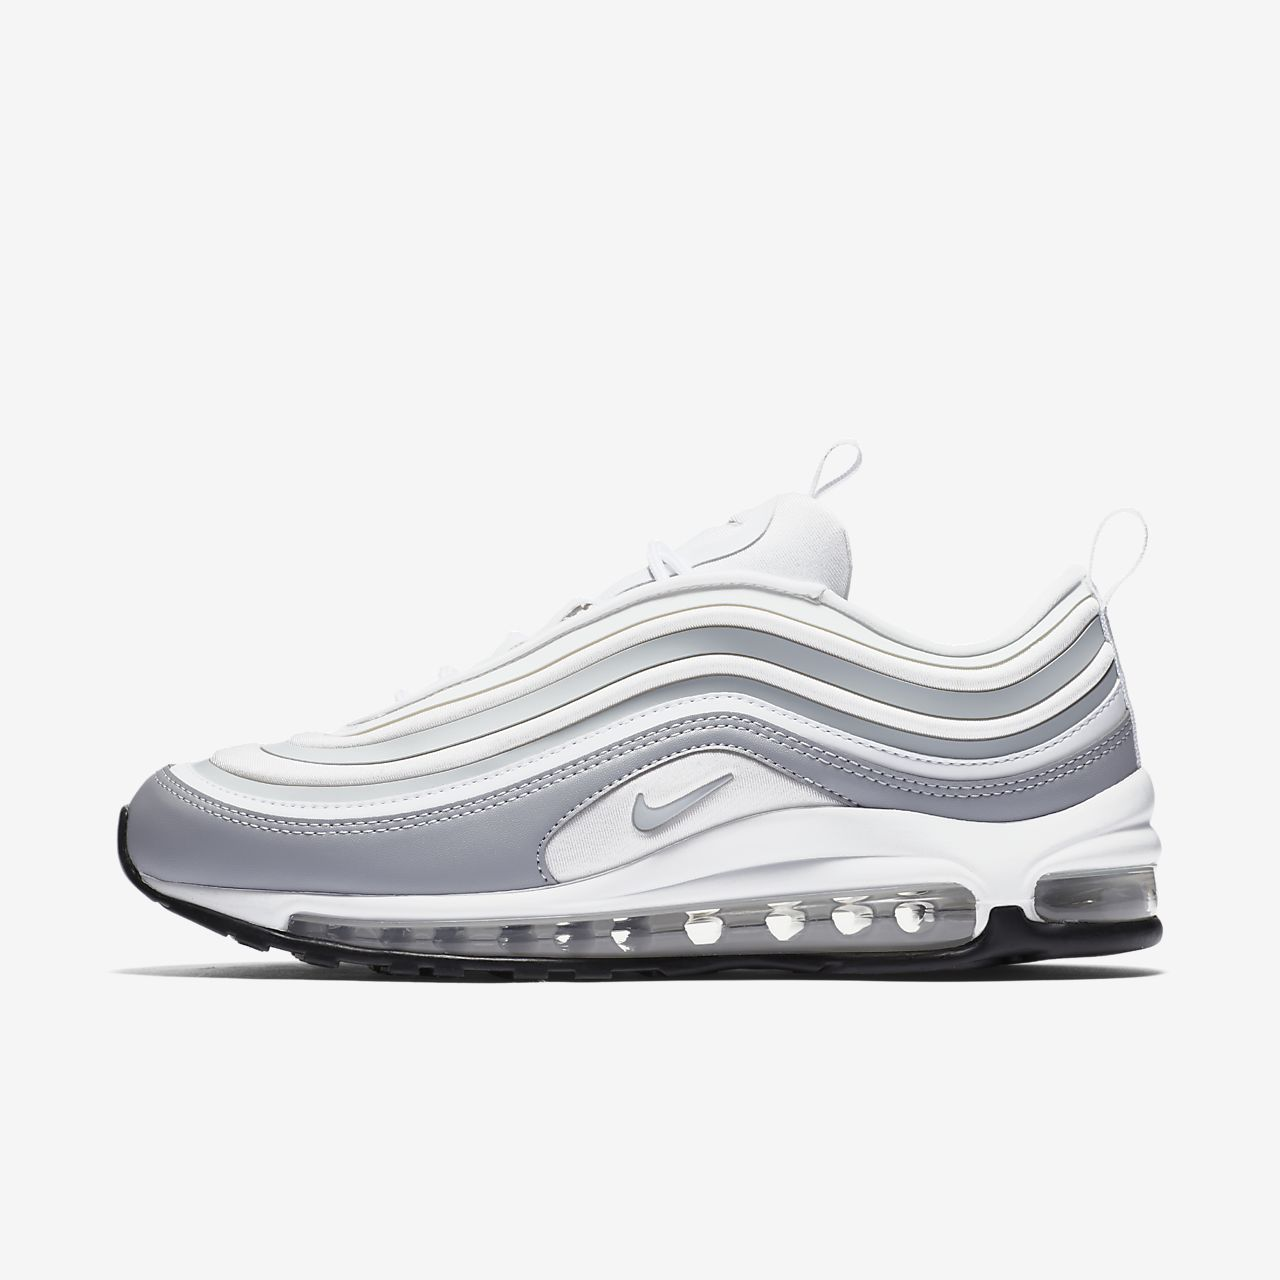 nike air max 97 ultra 17 - damen schuhe